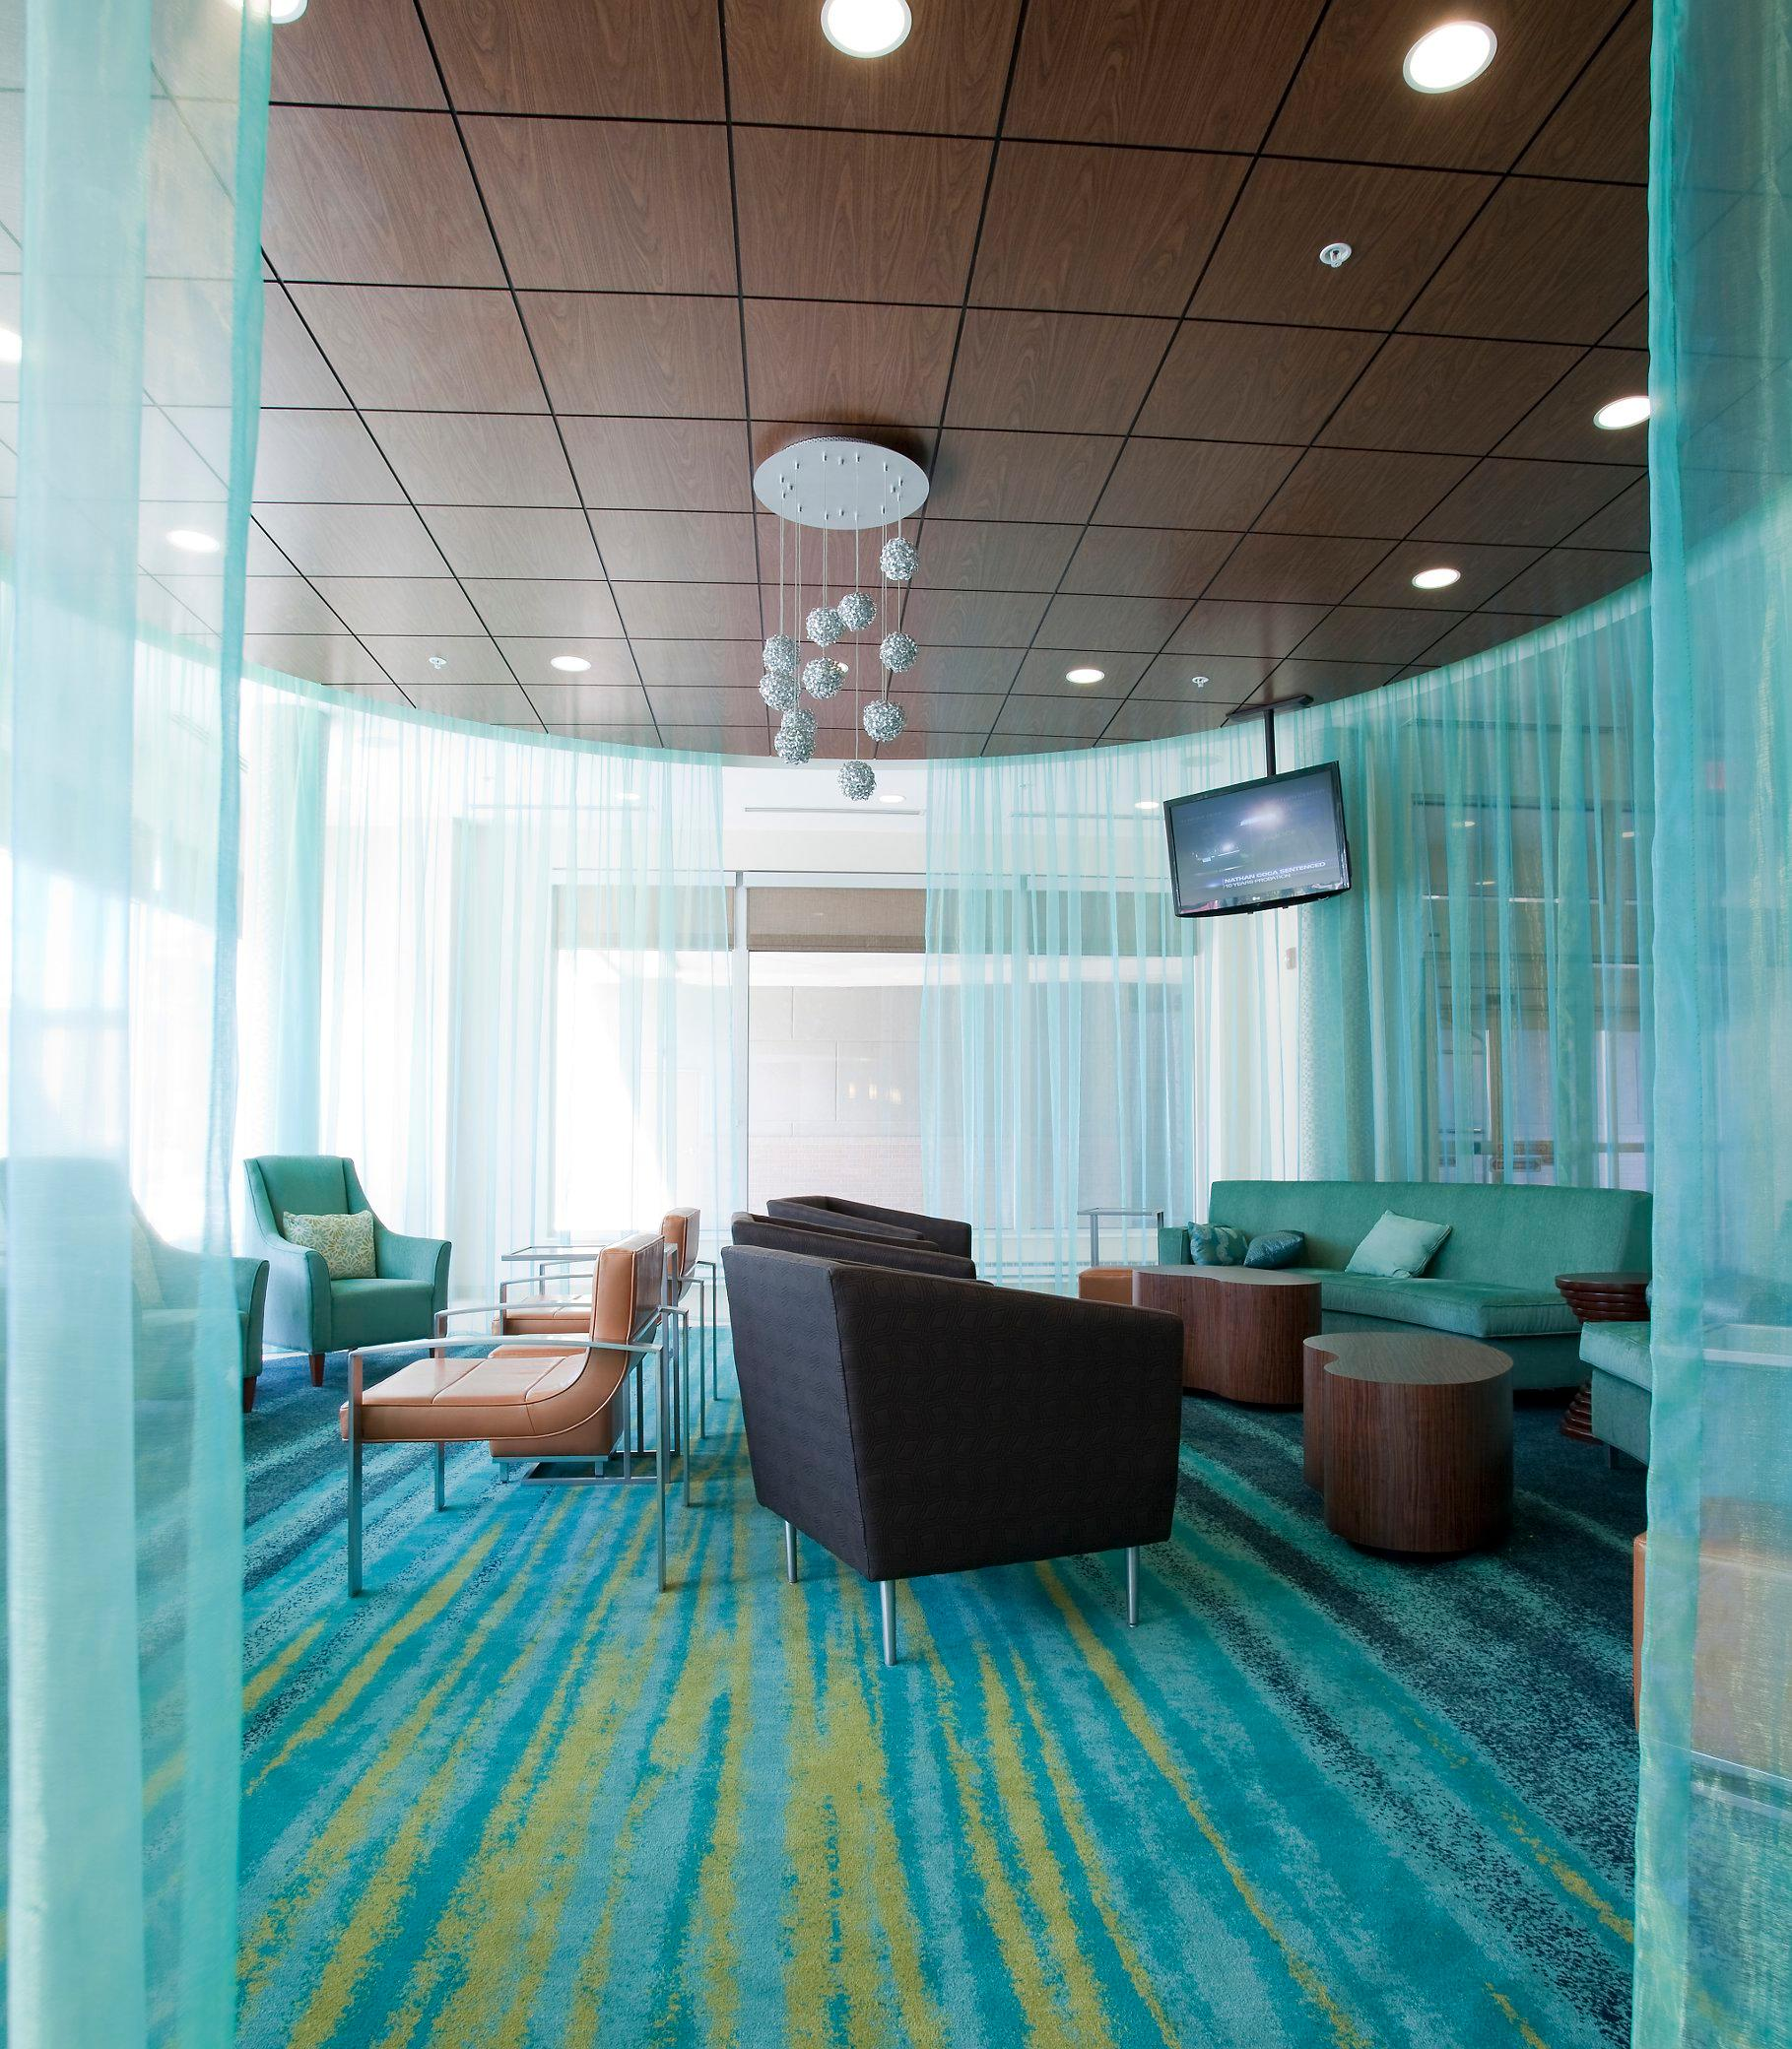 SpringHill Suites by Marriott Grand Junction Downtown/Historic Main Street image 11